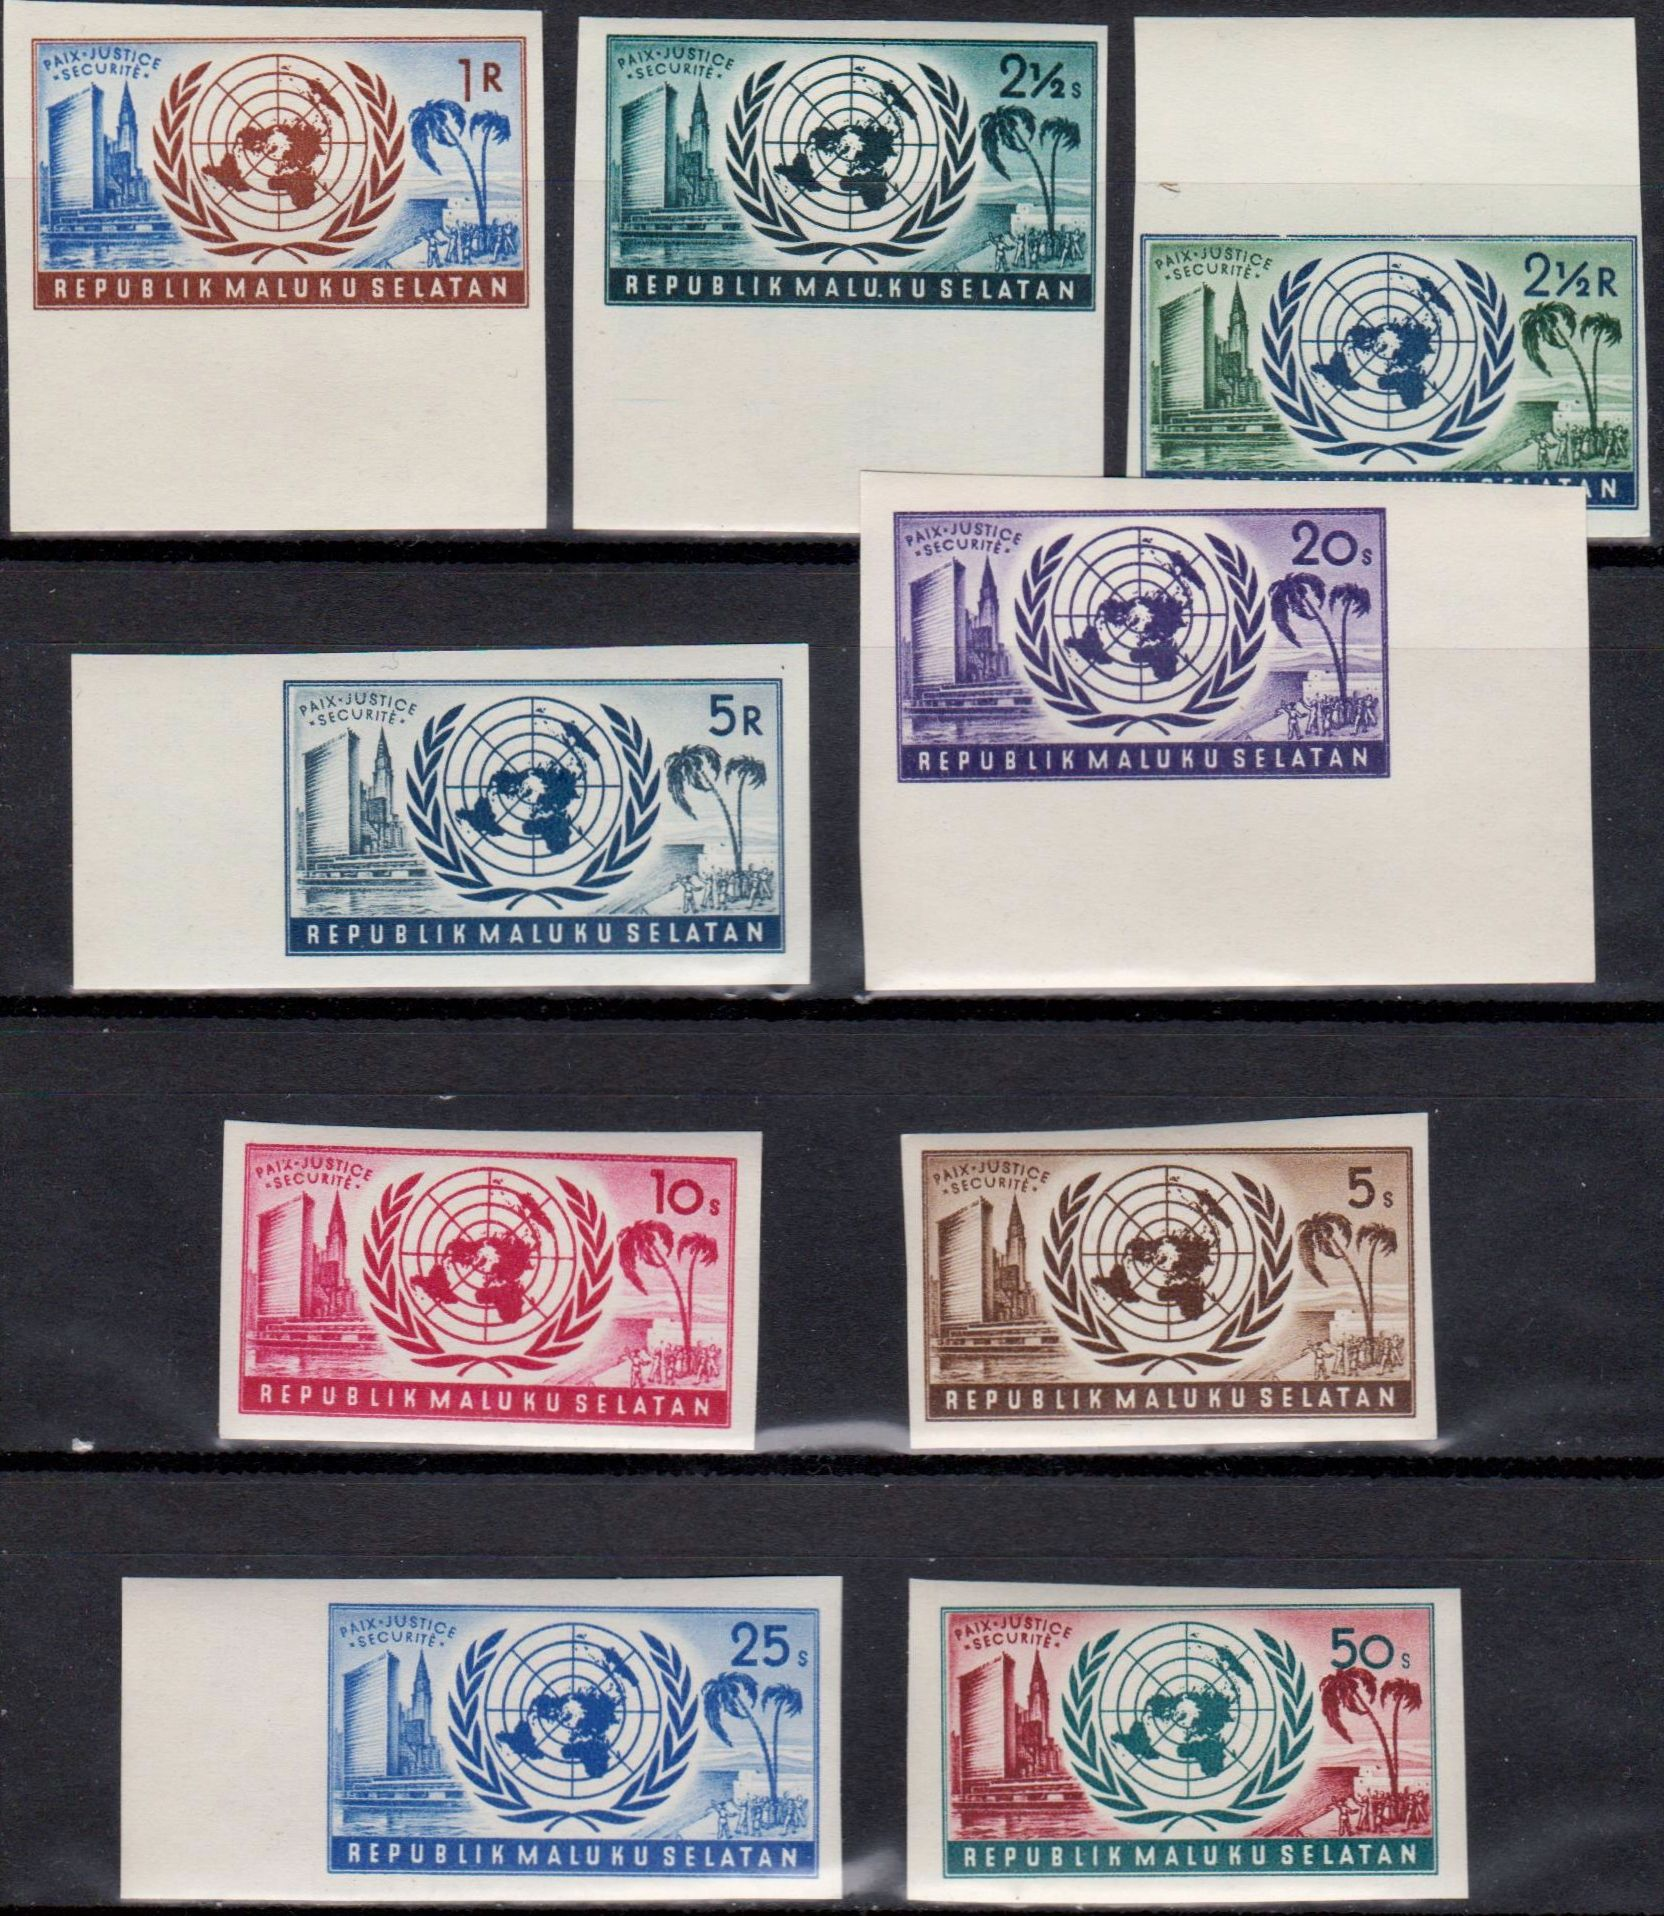 South Moluccas. Indonesia set of imperforated